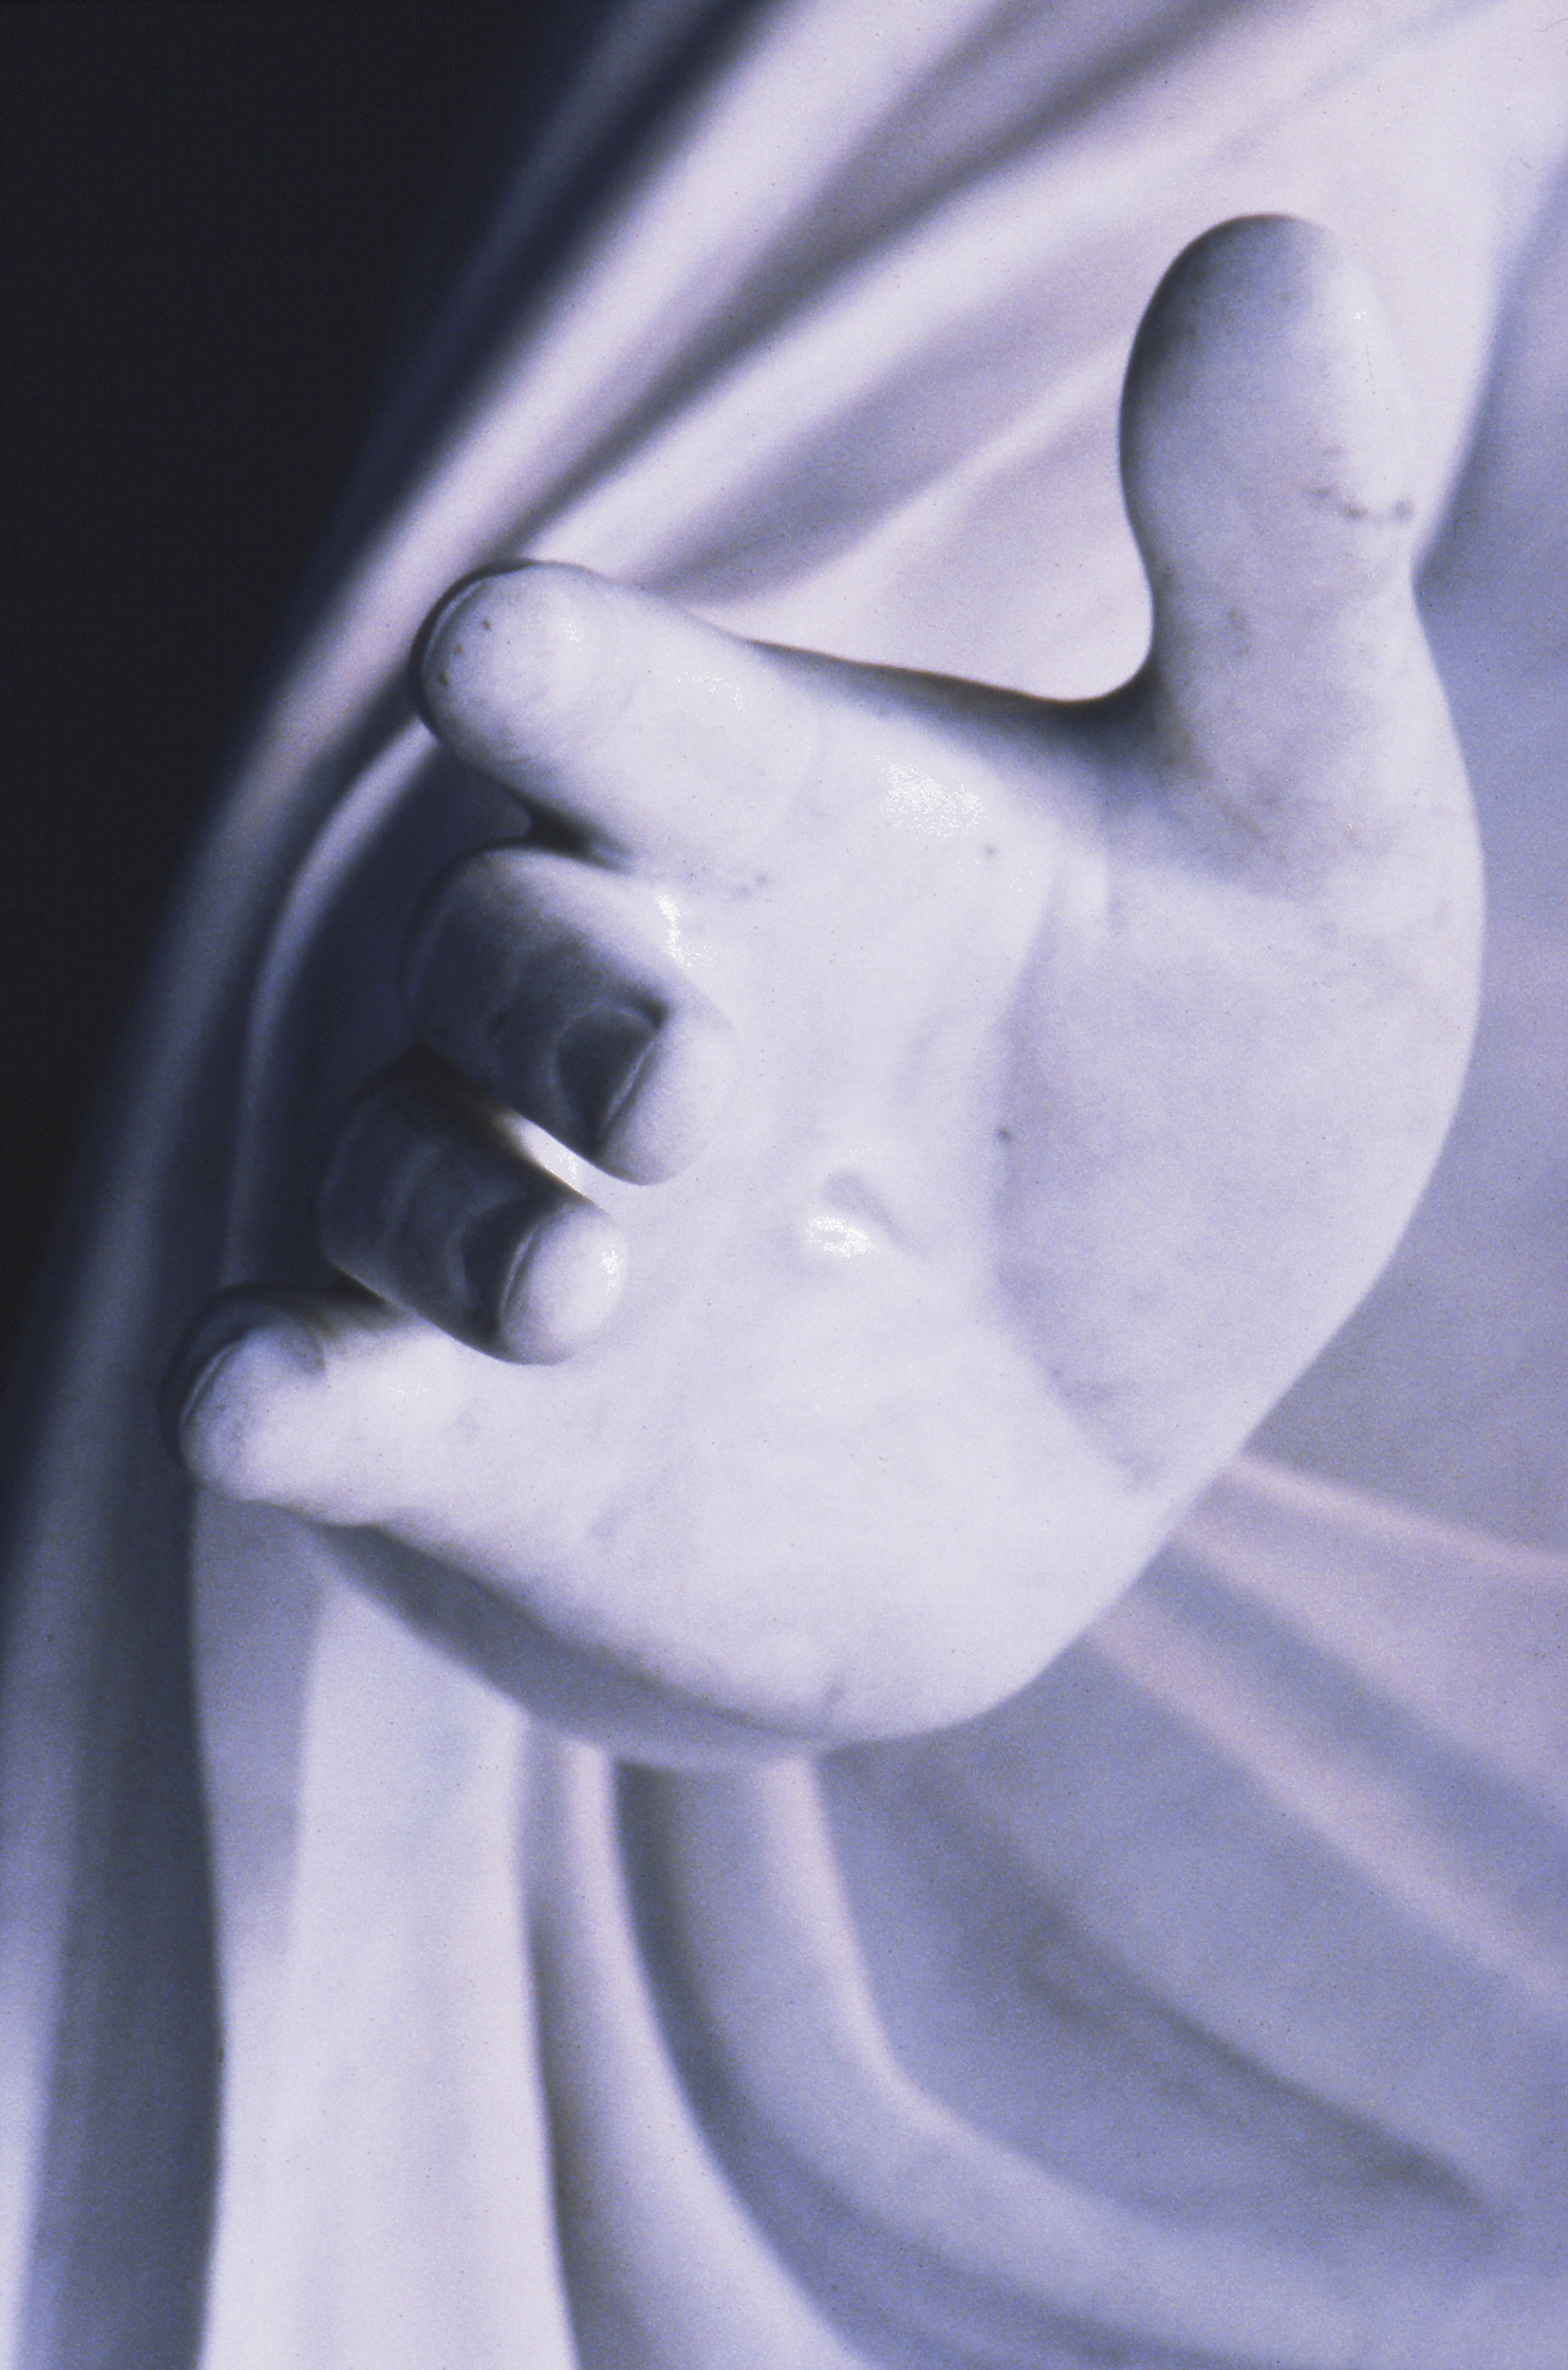 A detail of the hand of the replica of Bertel Thorvaldsen's Christus statue in the Salt Lake North Visitors' Center.